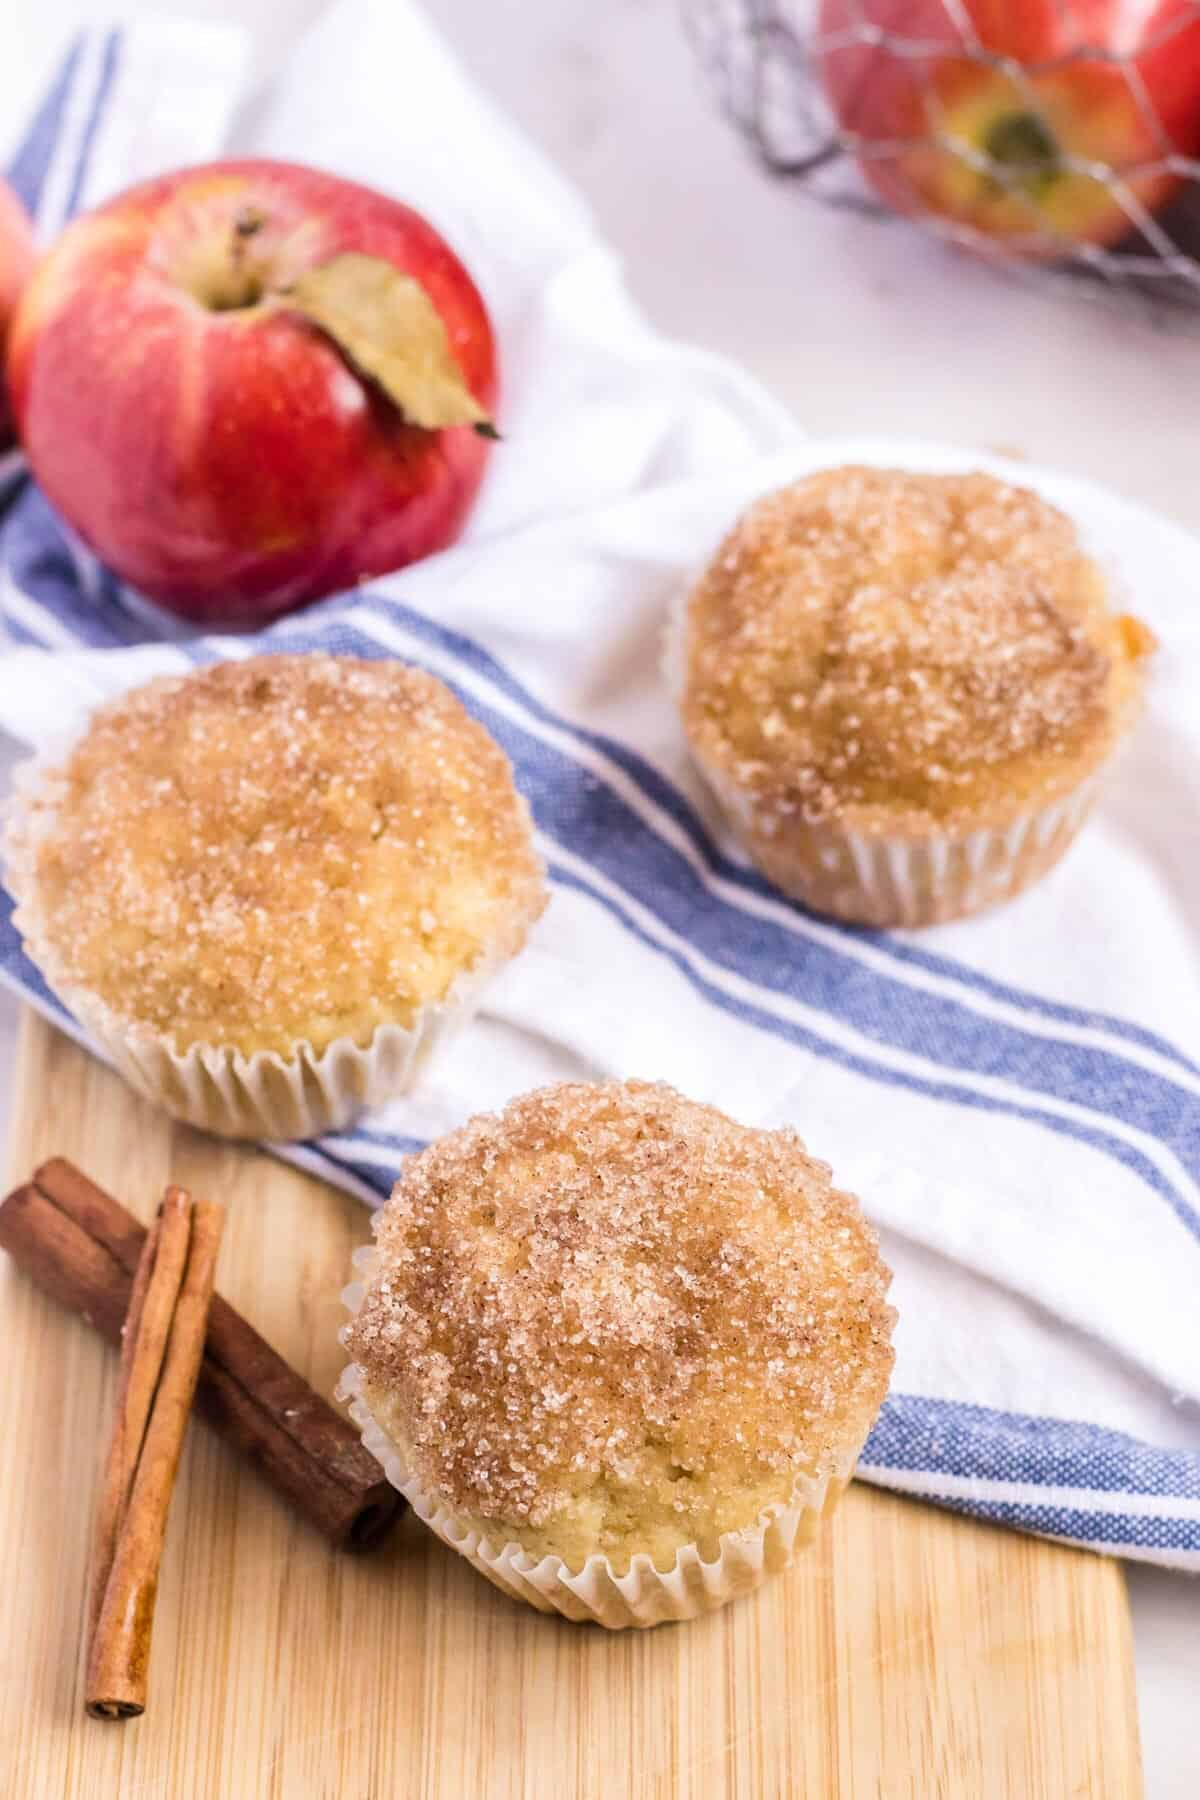 applesauce muffins on a wooden board with apples and cinnamon sticks